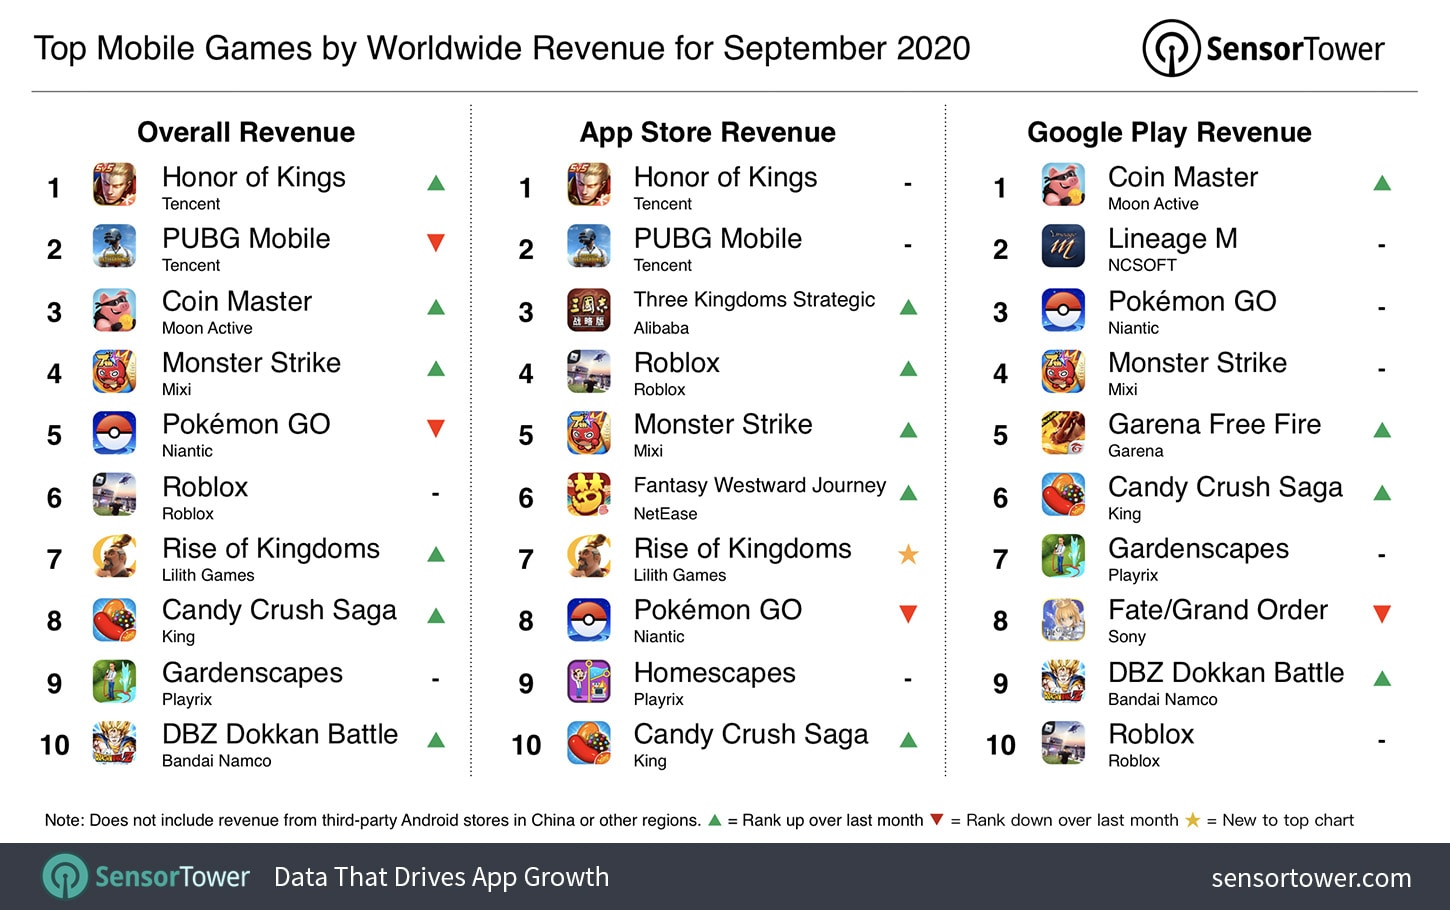 top-mobile-games-by-worldwide-revenue-september-2020